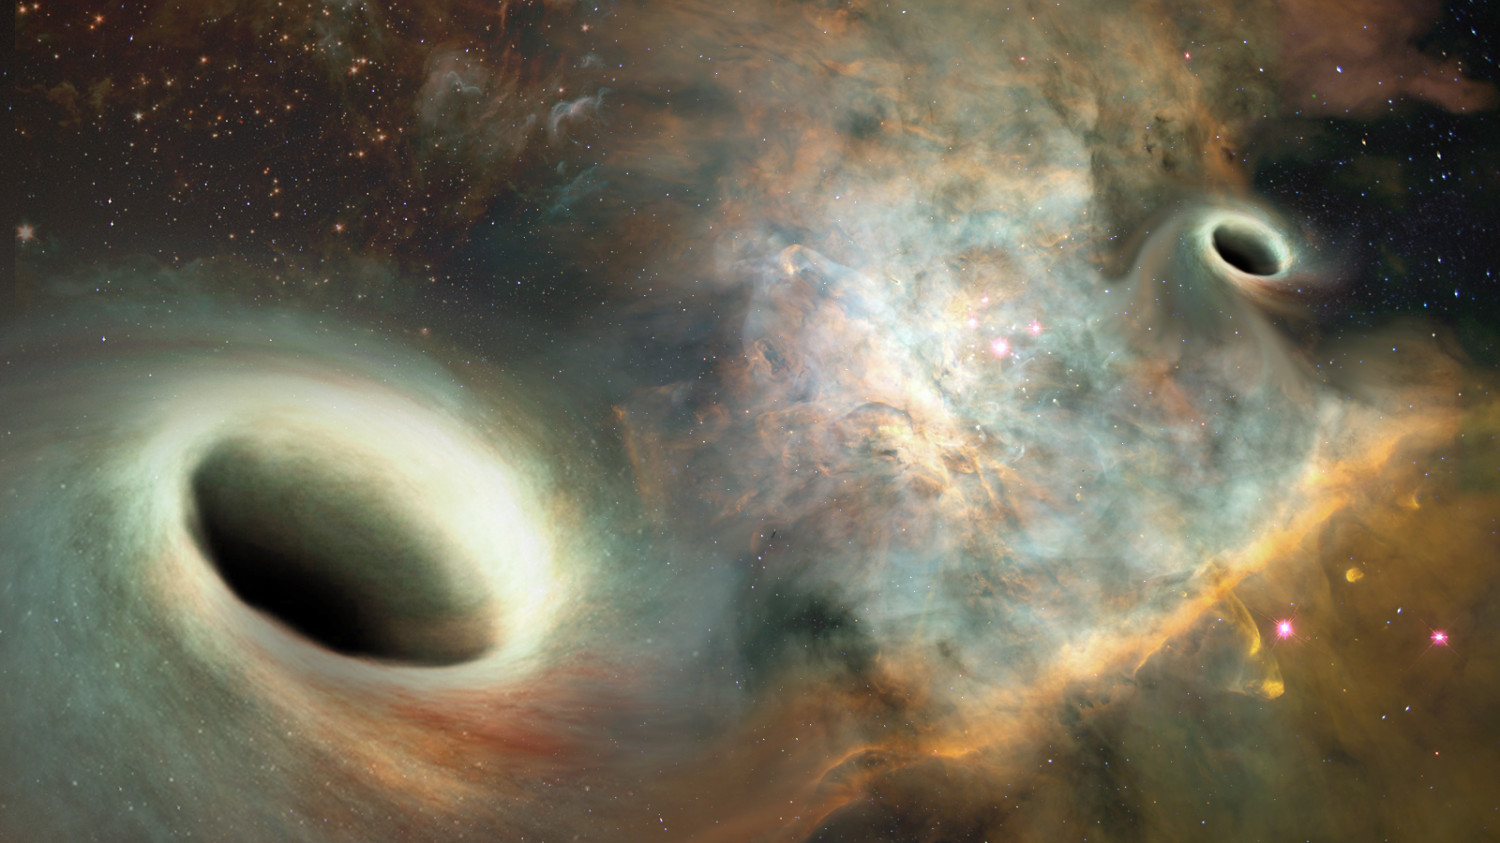 Supermassive Black Holes Observed Orbiting Each Other for Very First Time